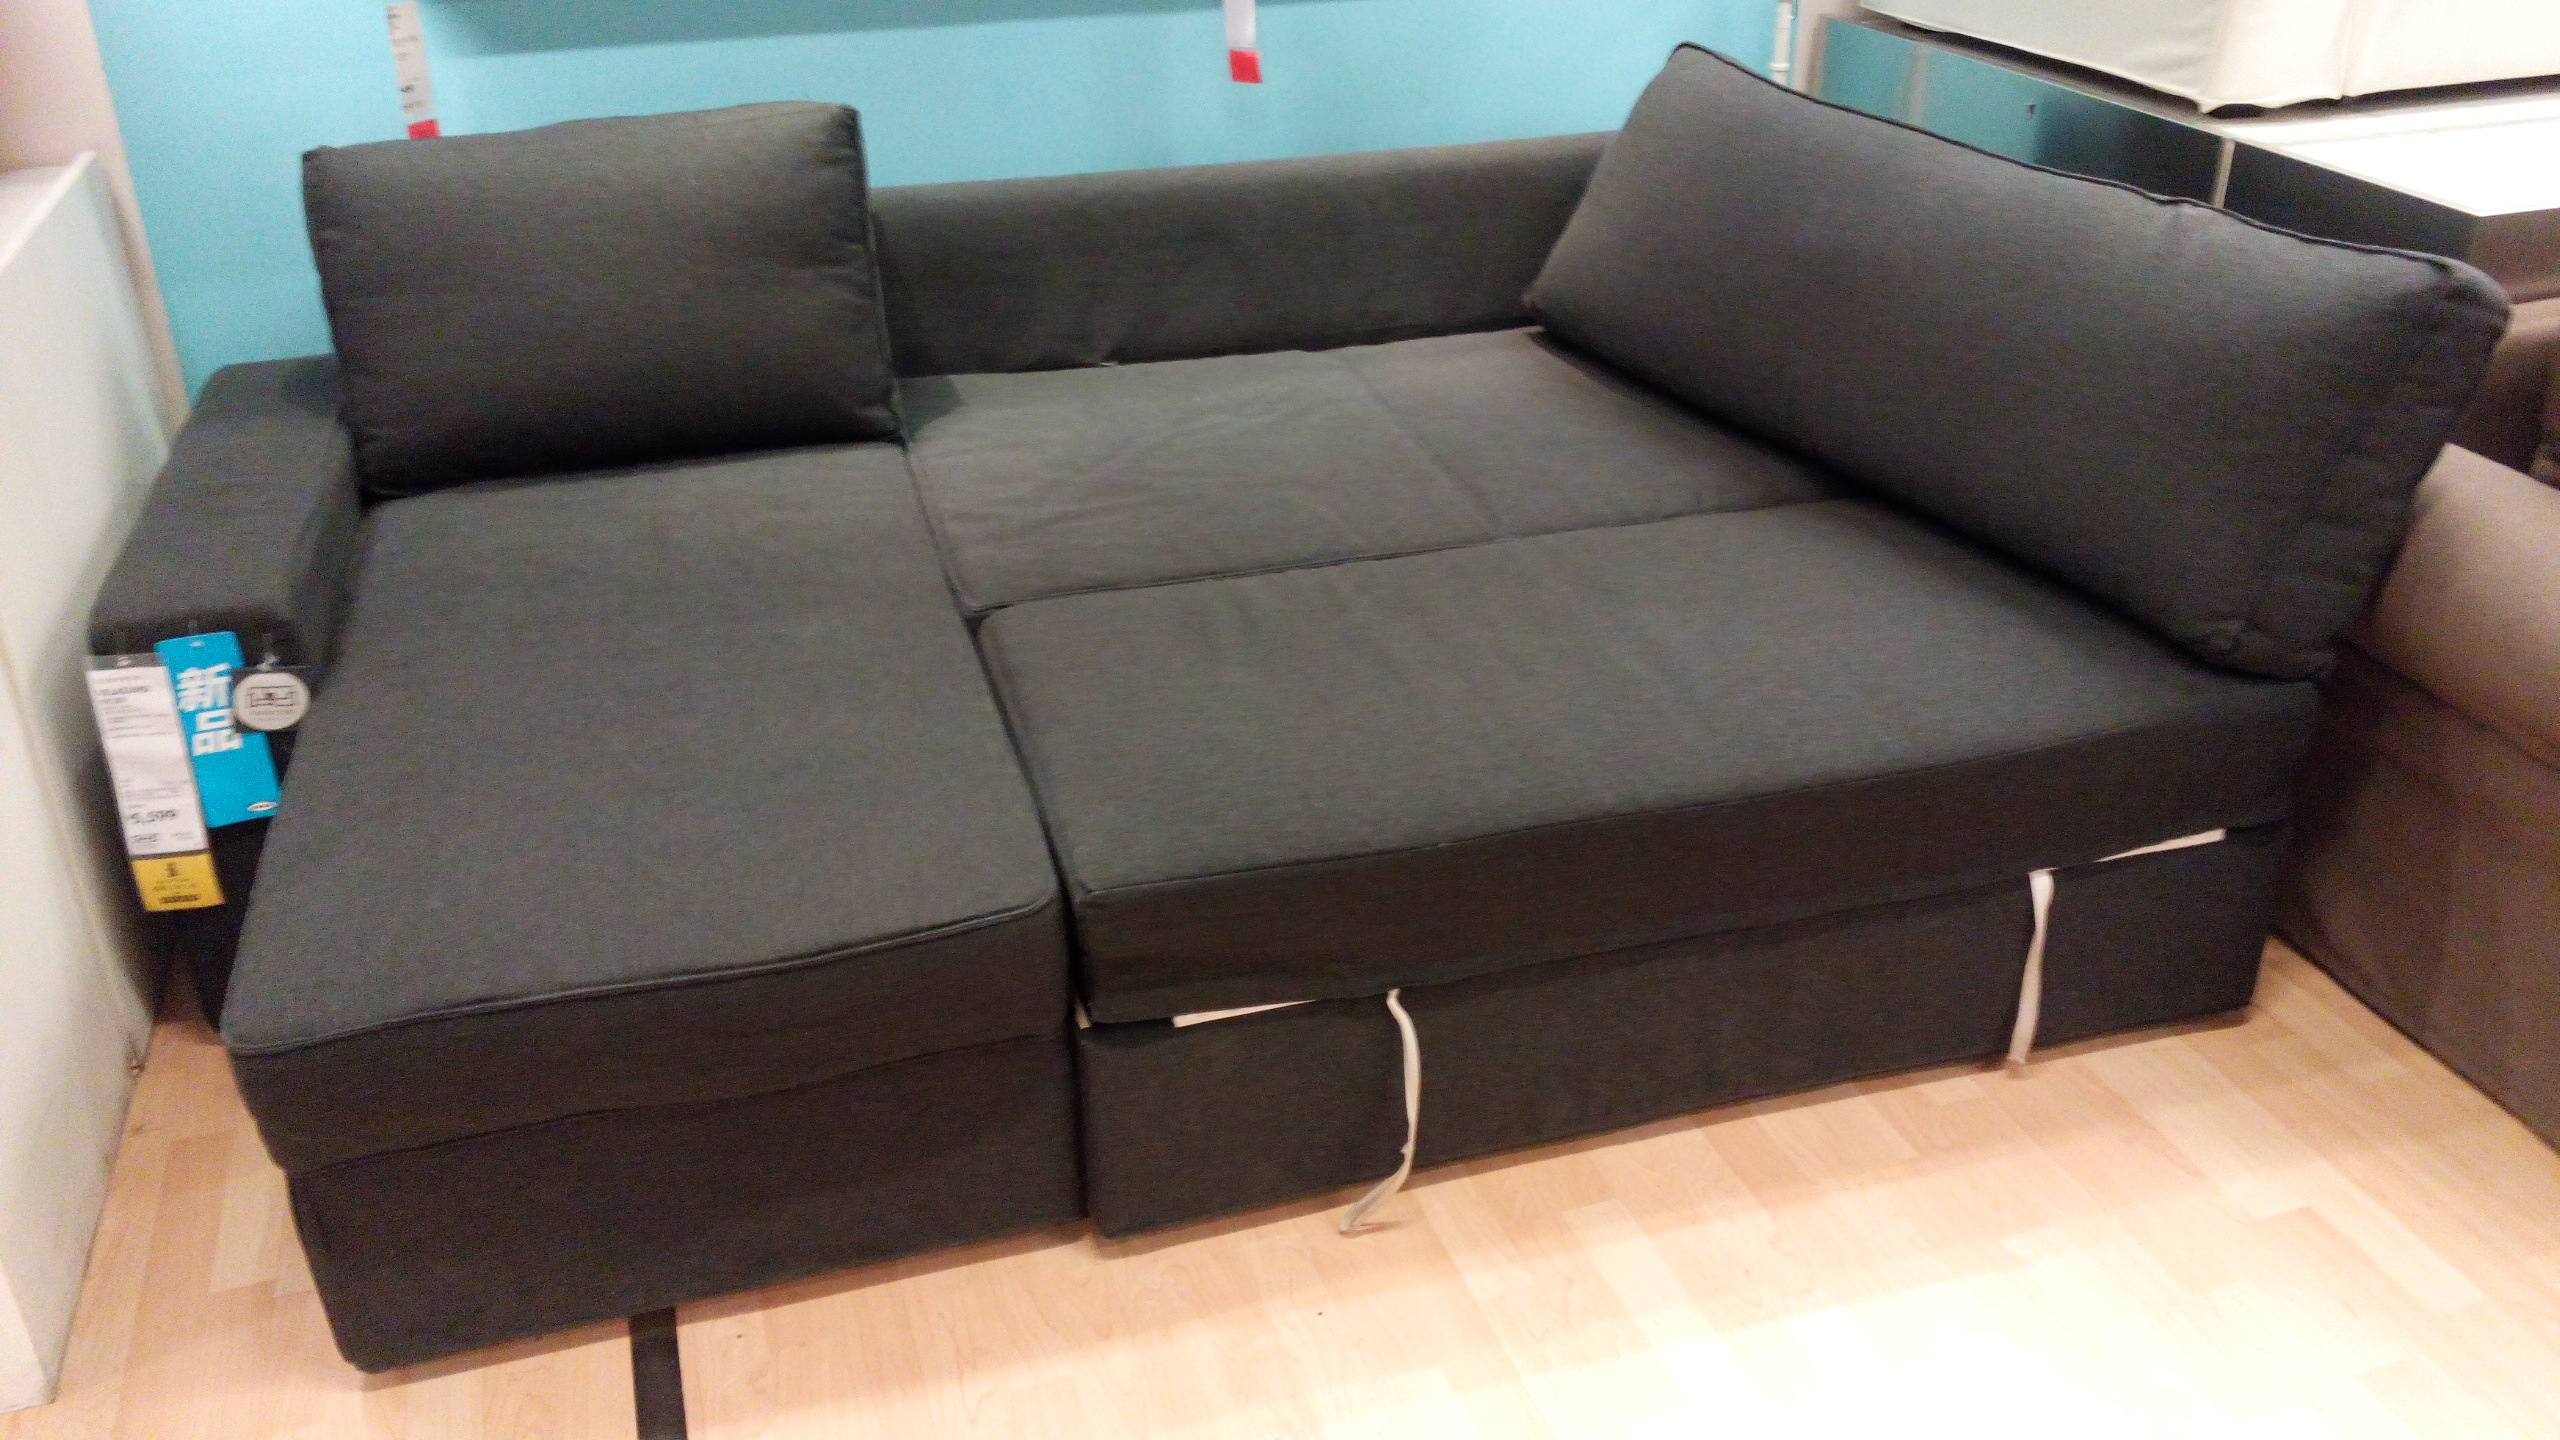 Bestes Ikea Sofa Top 10 Ikea Sofa Beds Reviewed Jan 2019 Sleep Good Tonight